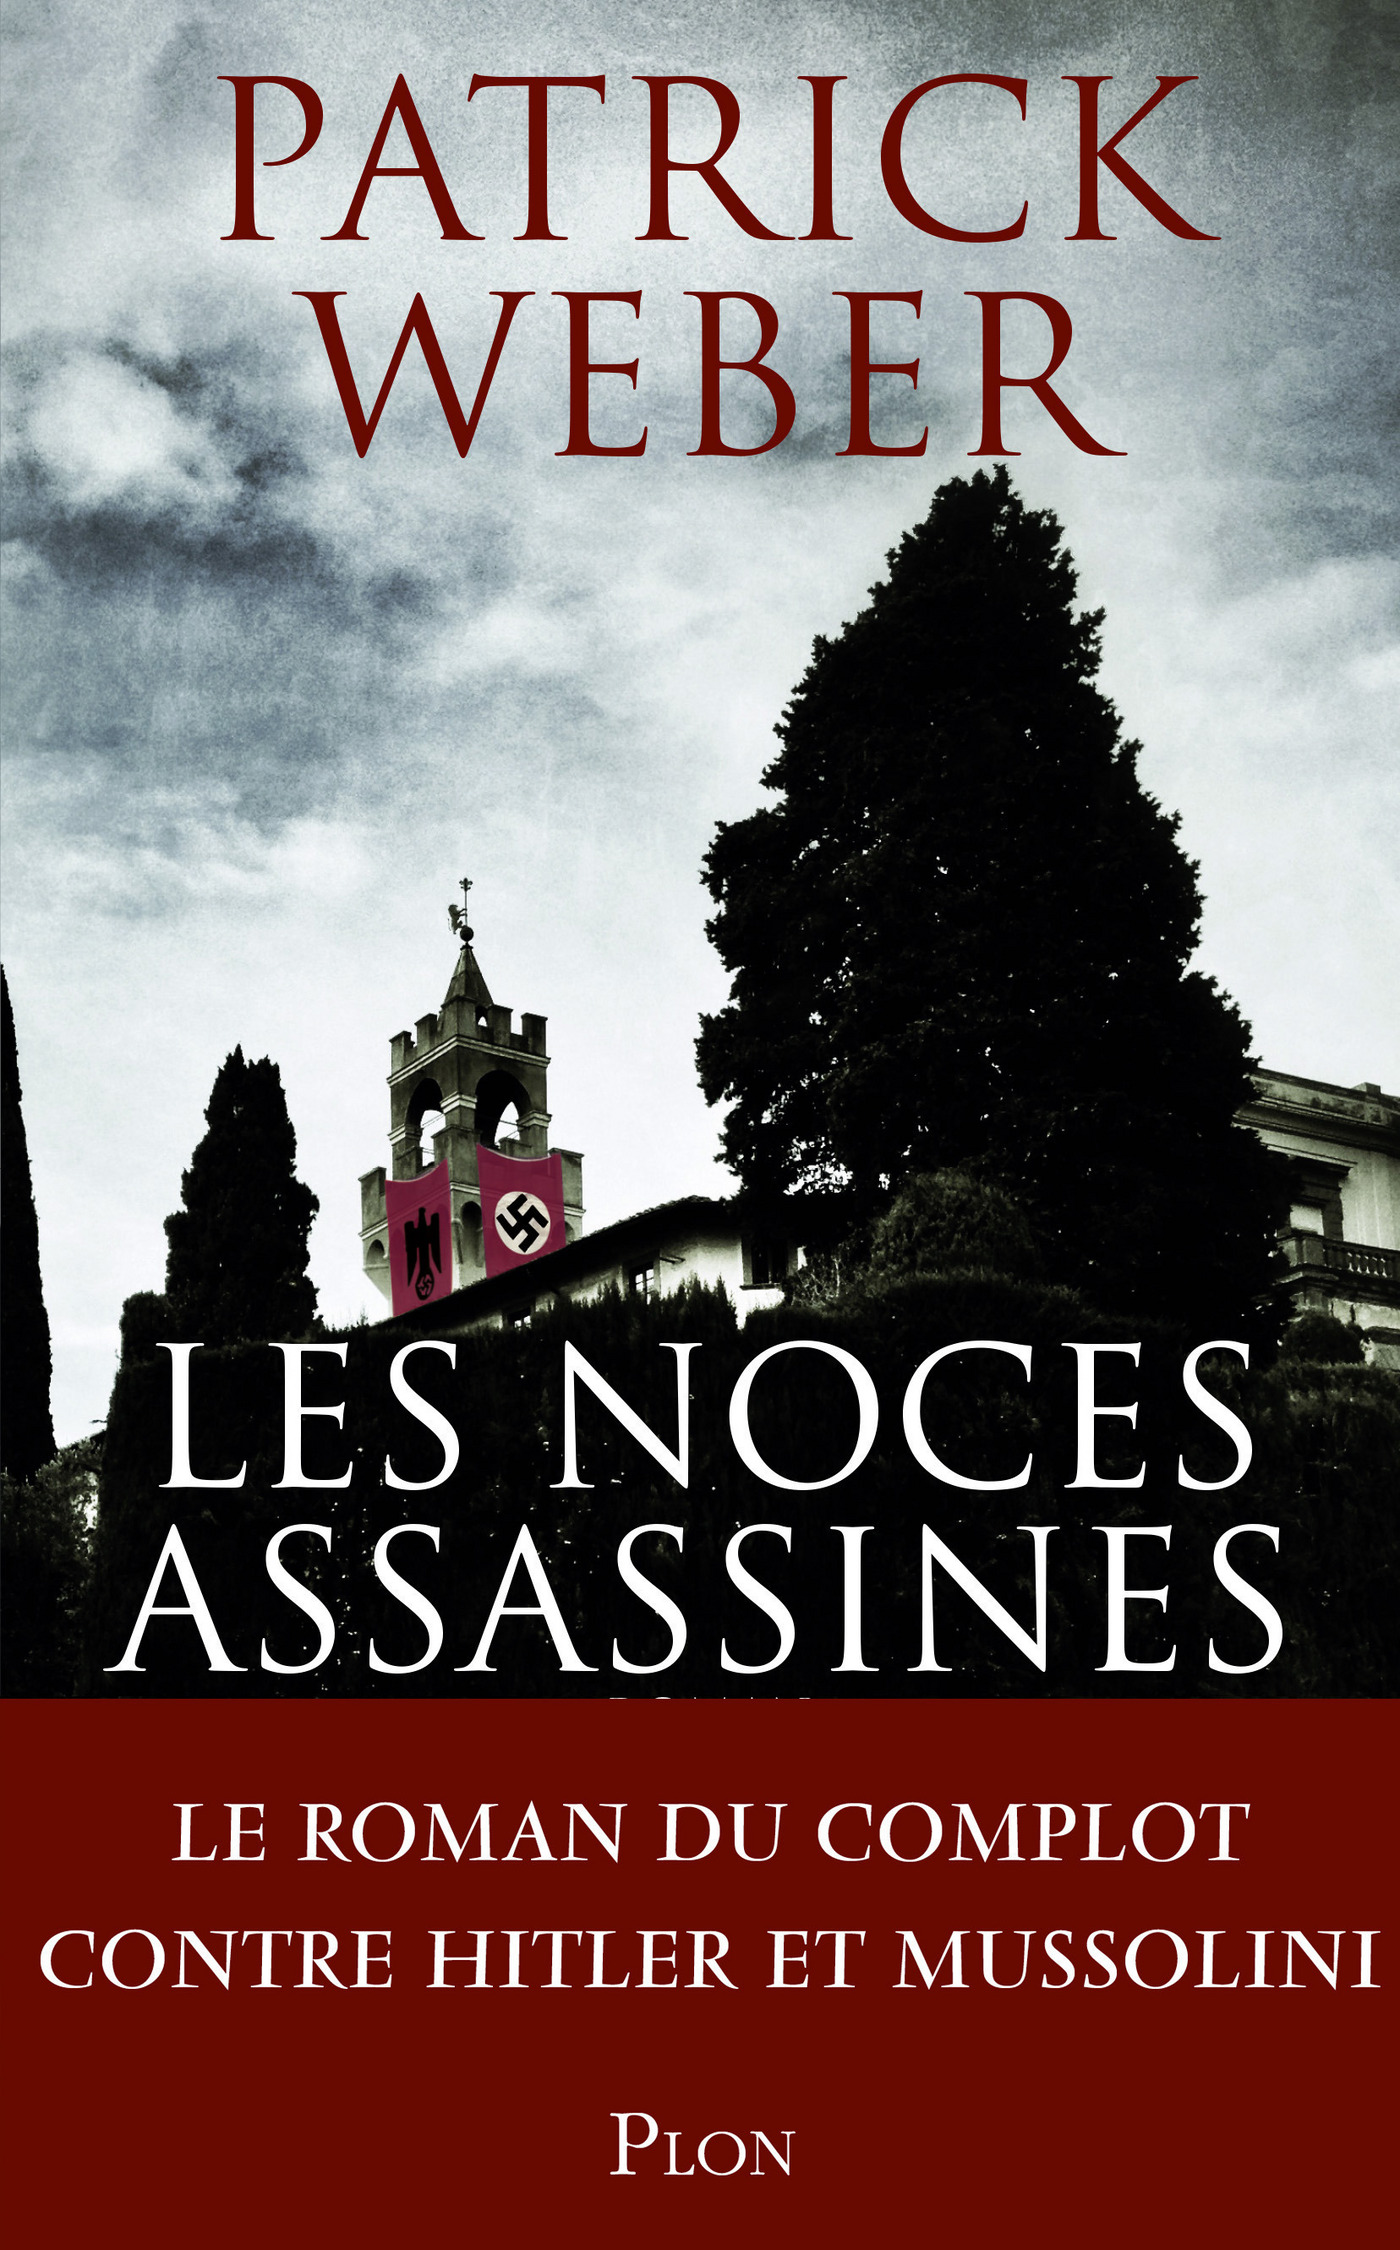 Les noces assassines